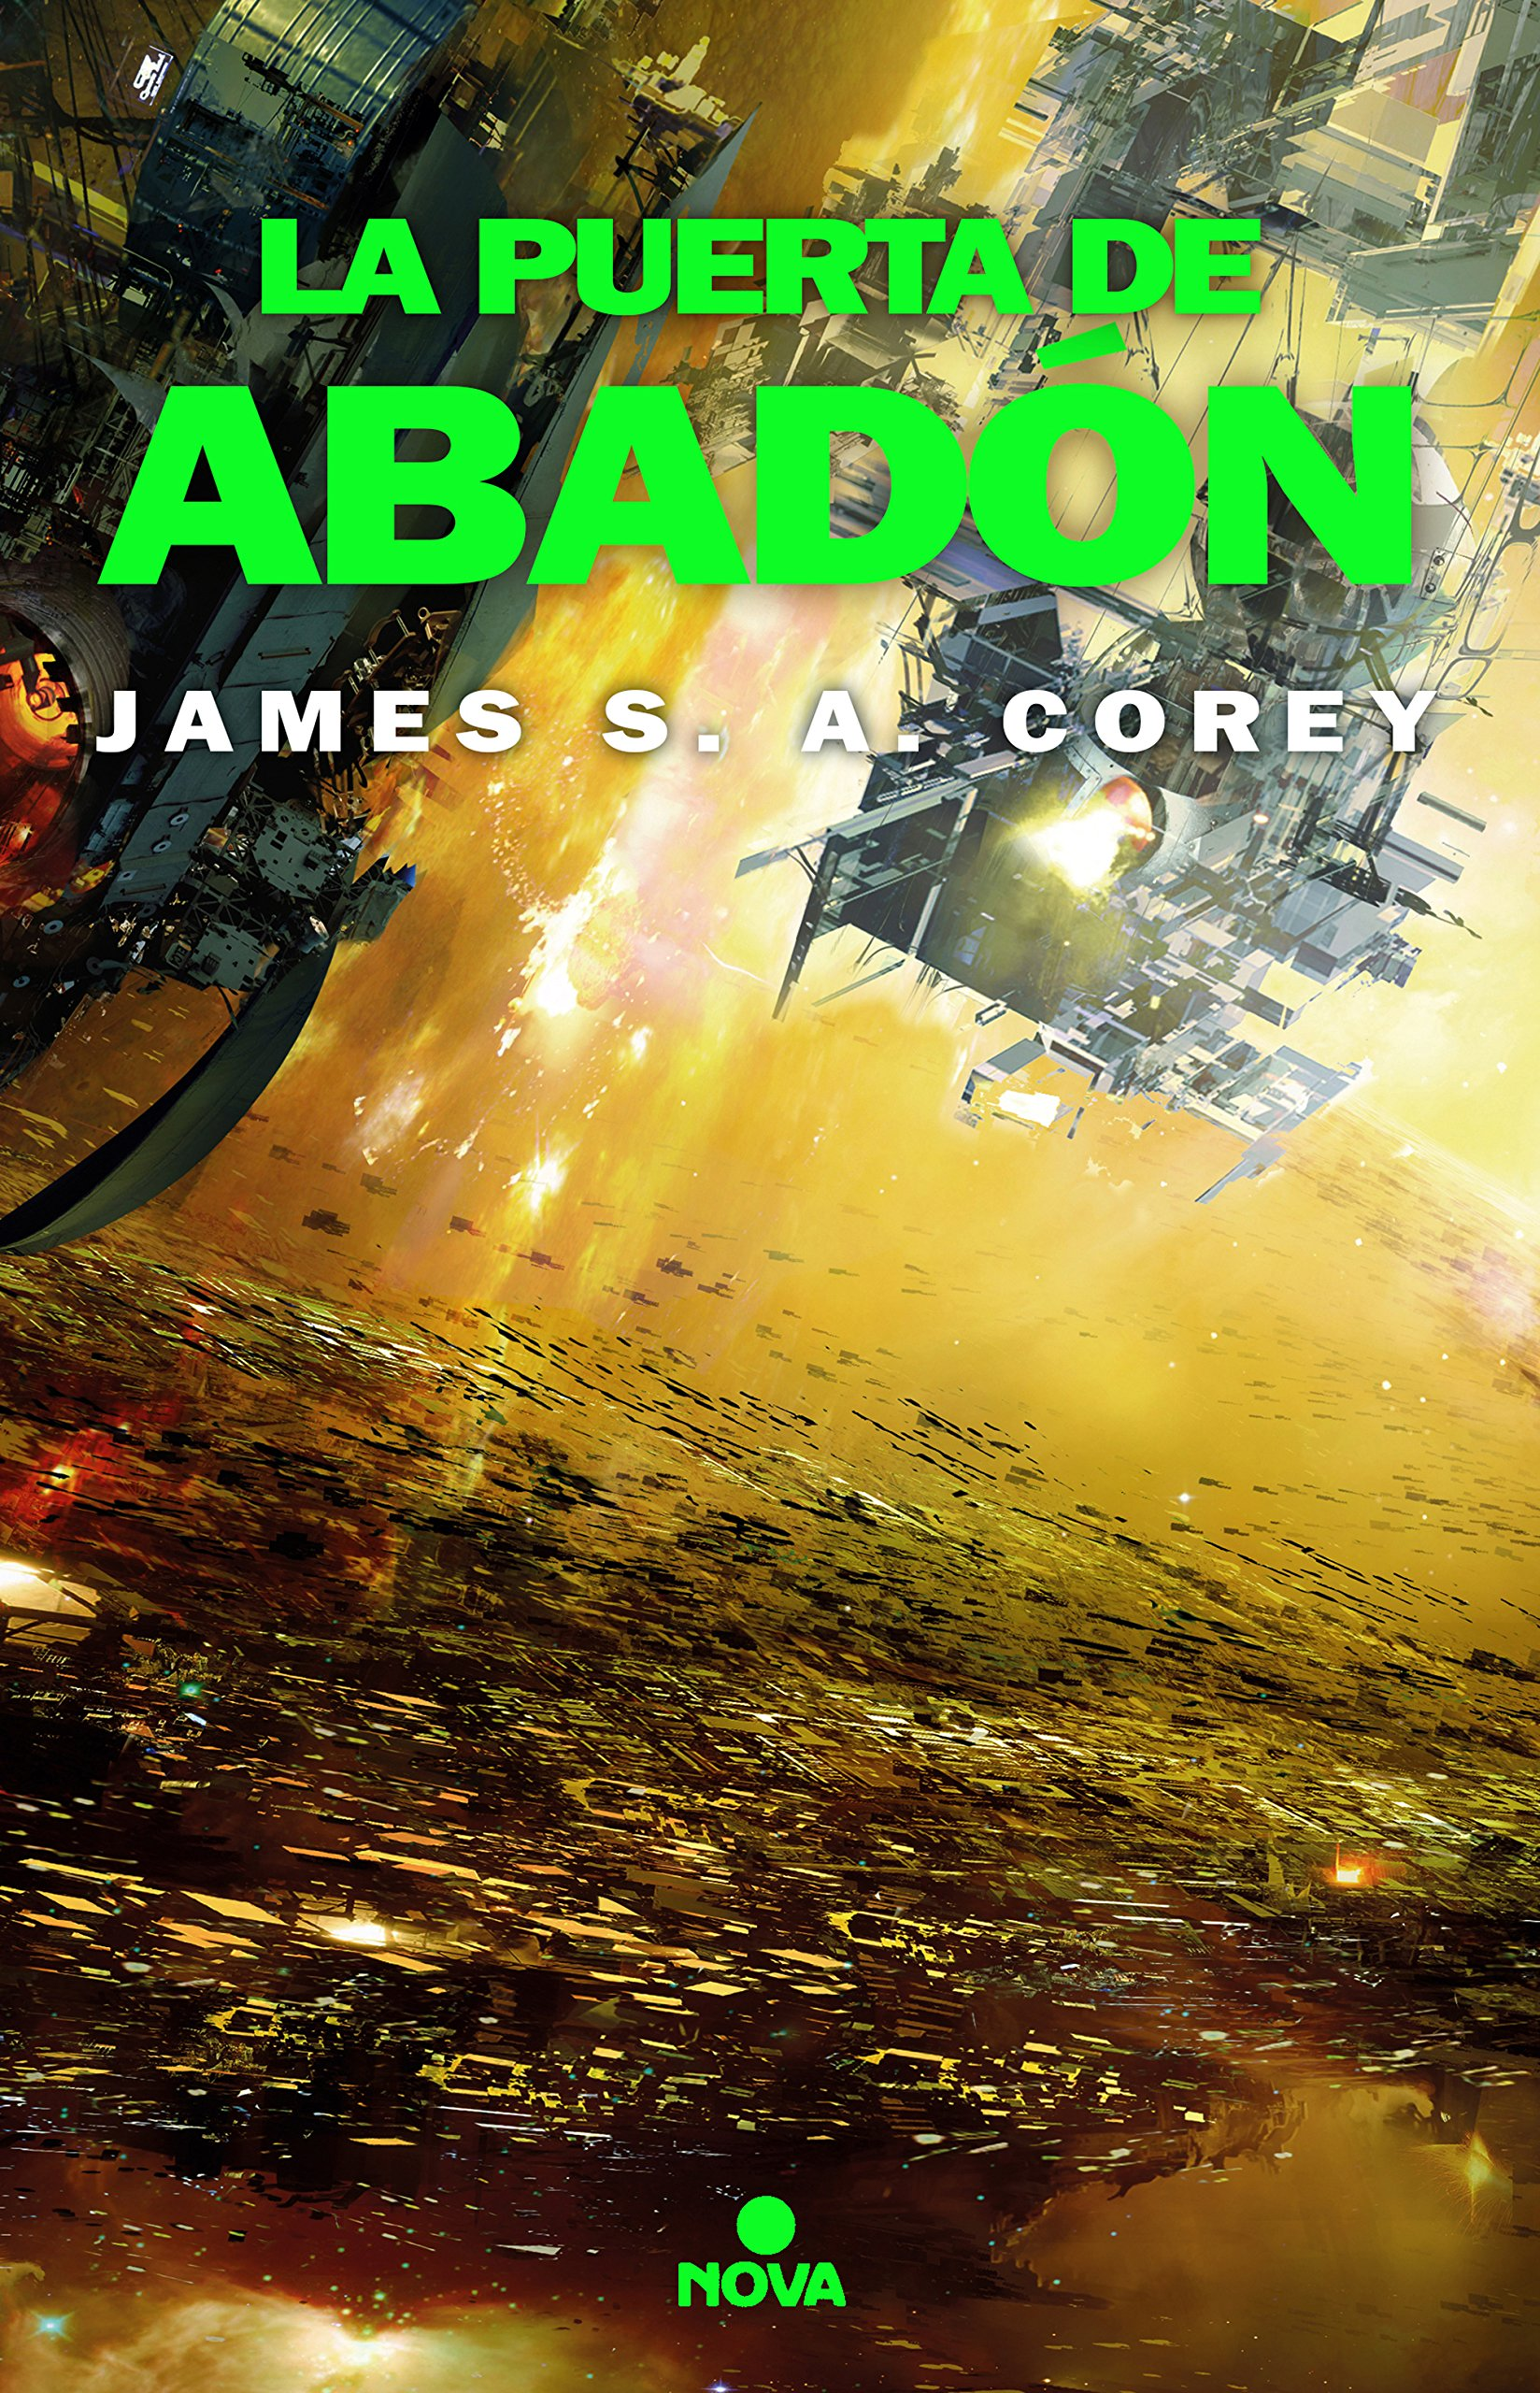 La puerta de Abadón (The Expanse 3) (NOVA) Tapa blanda – 20 sep 2018 James S.A. Corey 8417347208 Science fiction